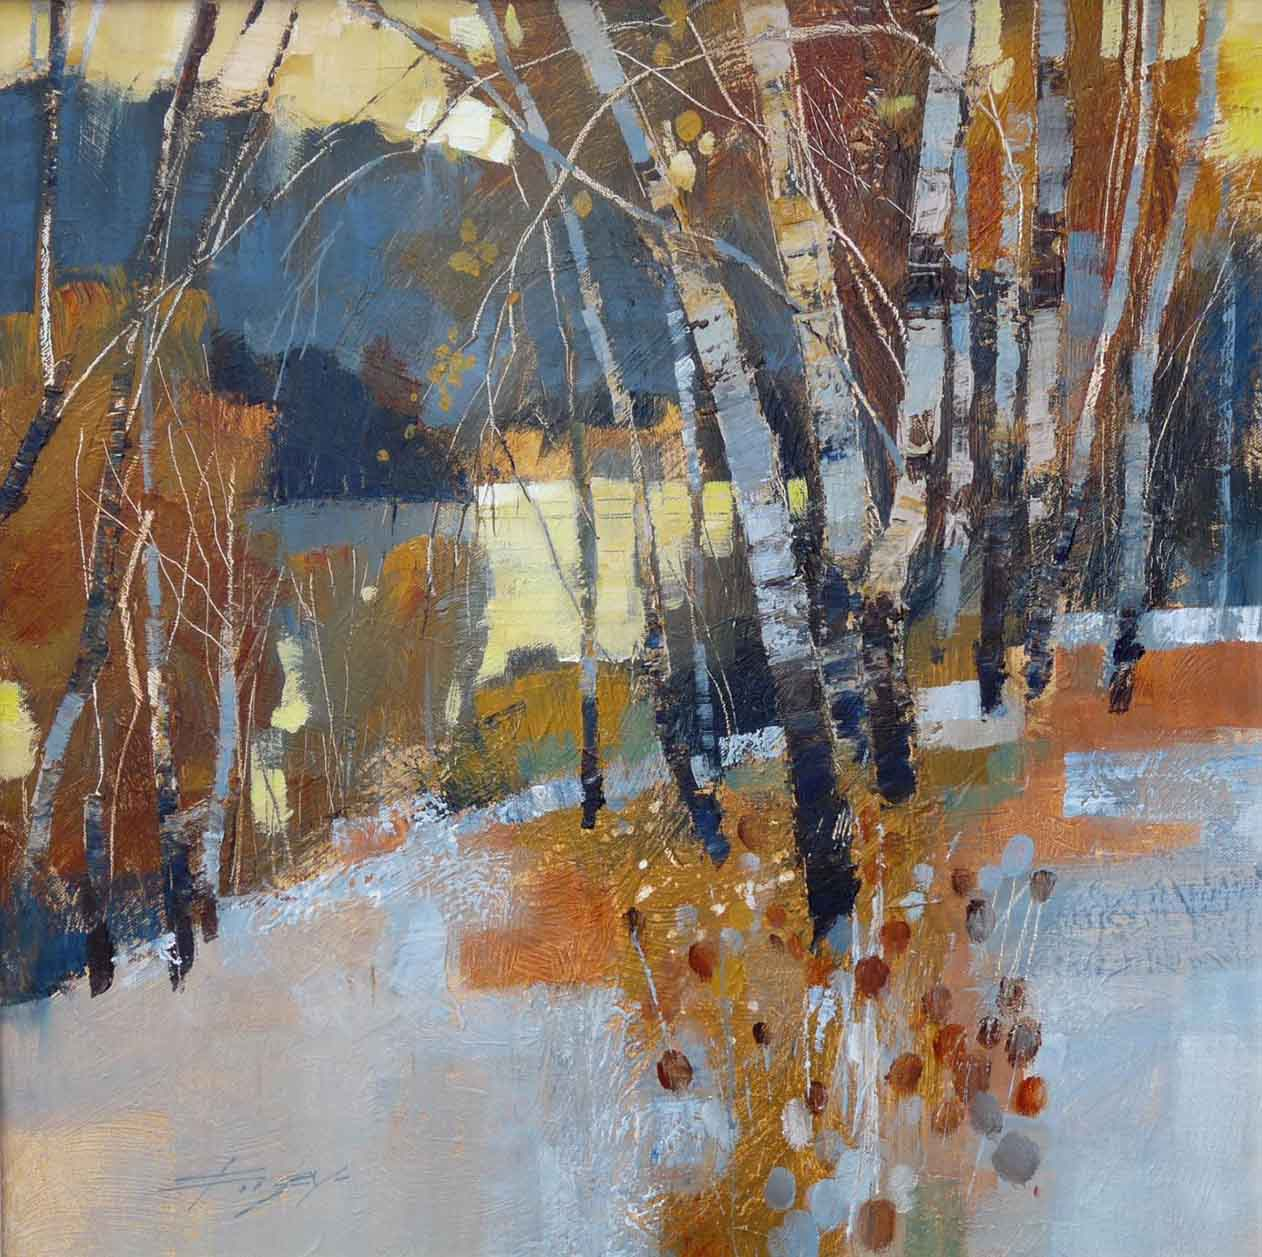 Birch, frost and winter lake by Chris Forsey